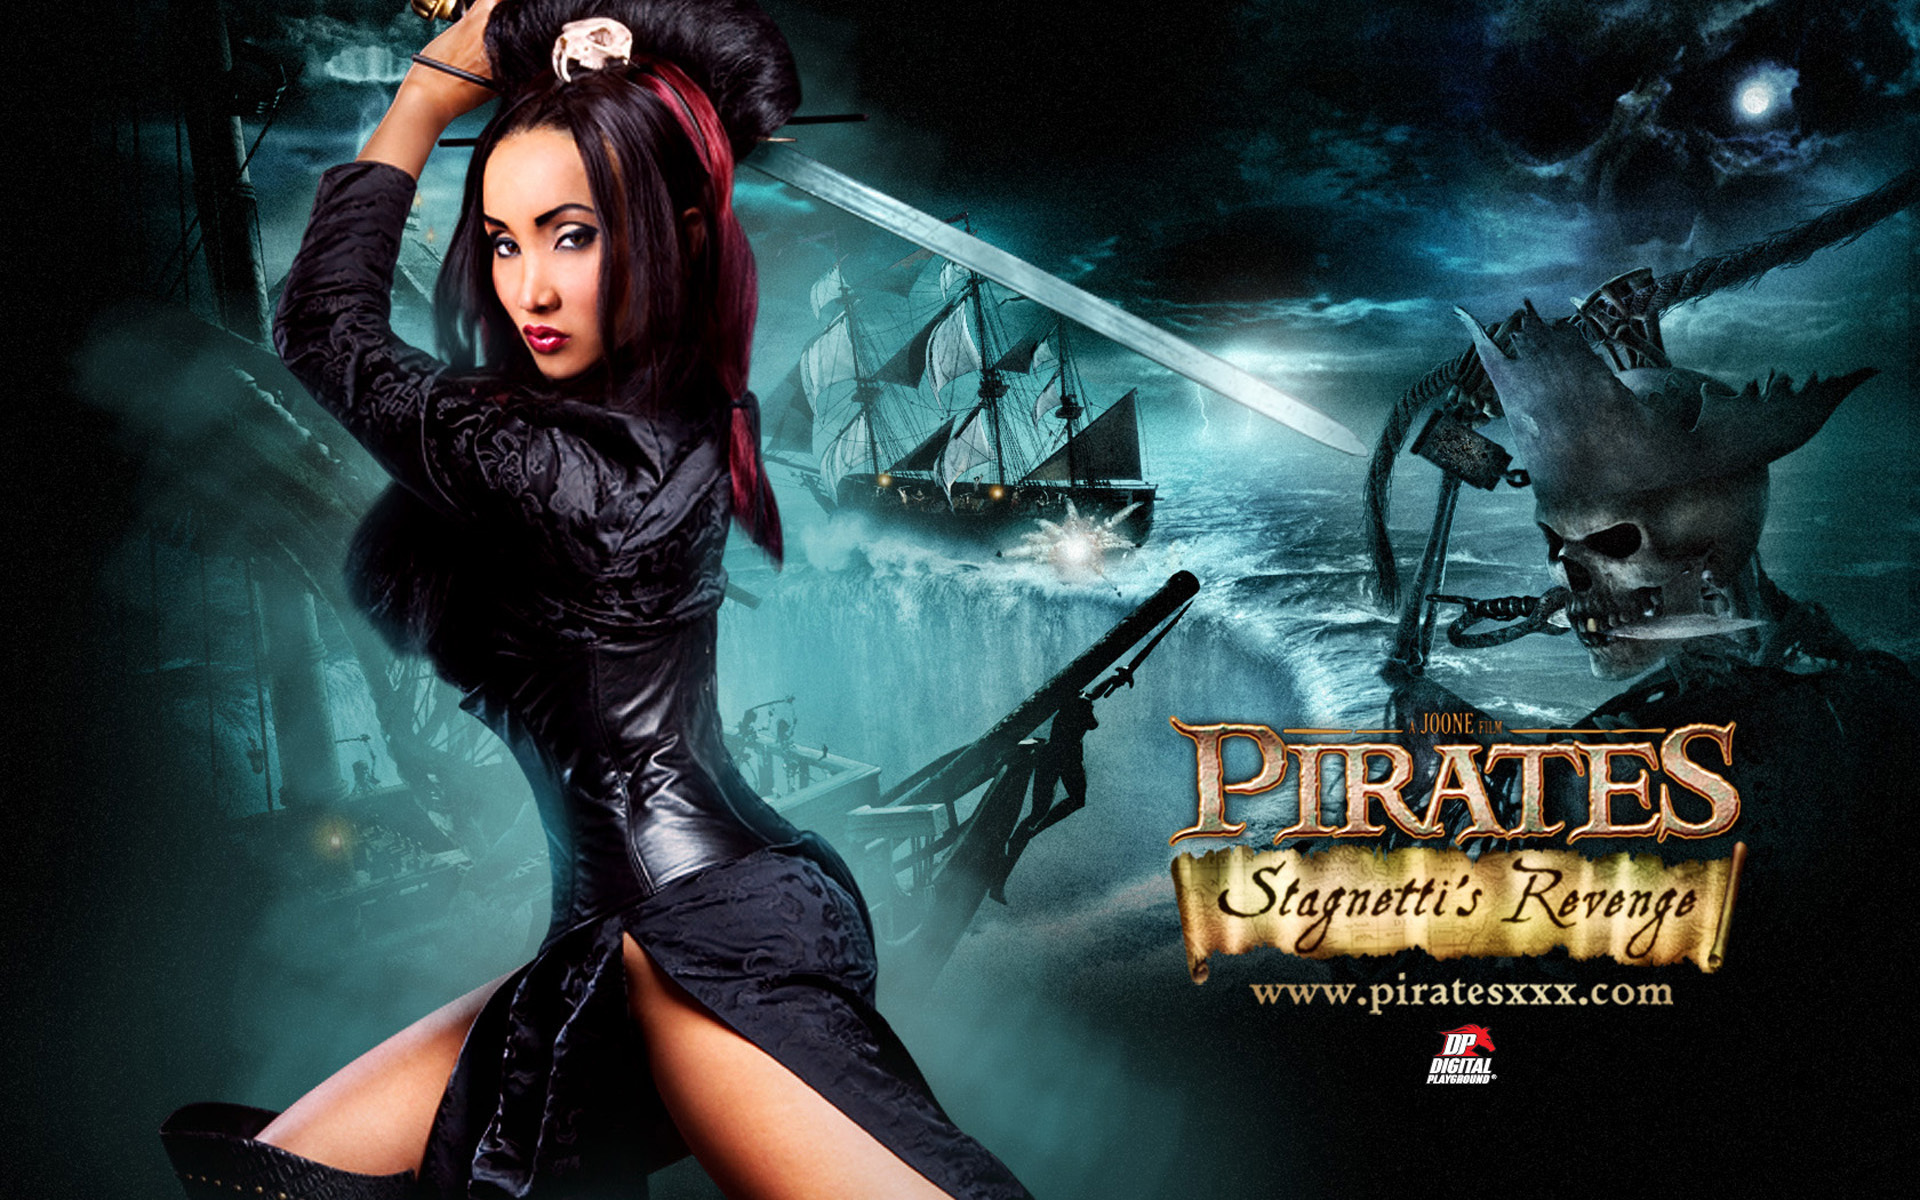 Pirates adult movie cast nsfw clips